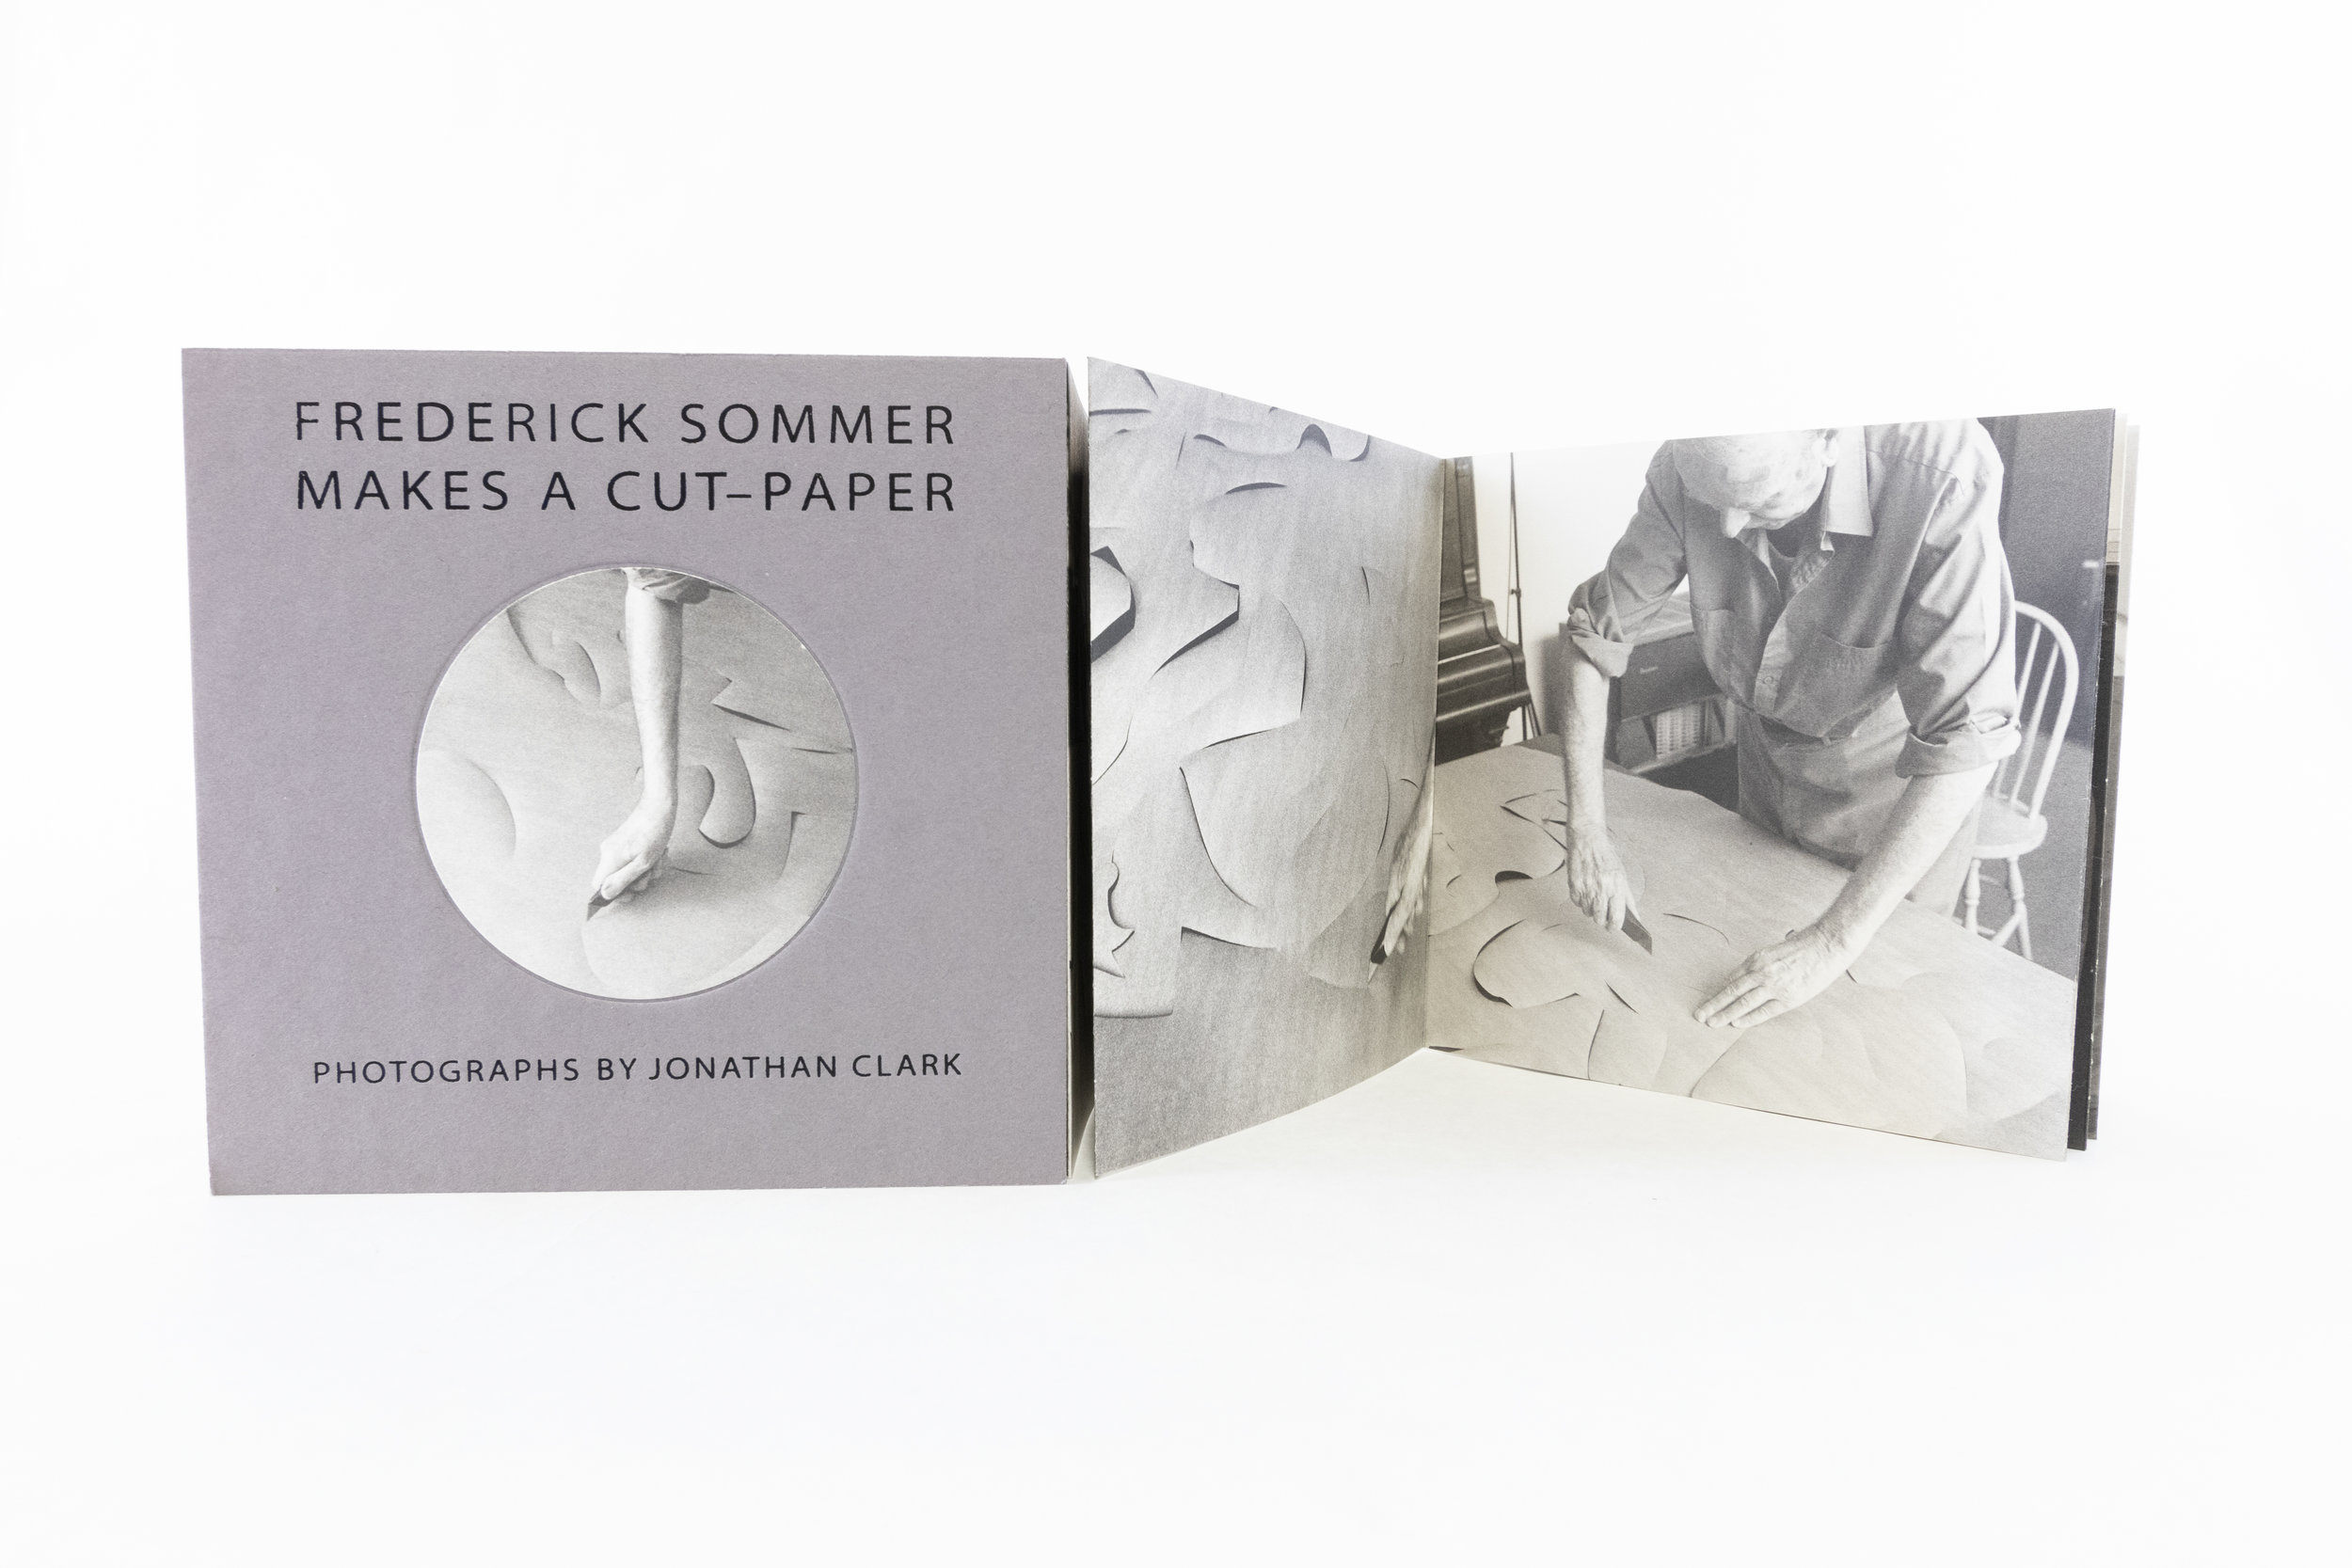 """Jonathan Clark, Frederick Sommer, Artichoke Editions, """"Cut-Paper,"""" Offset lithography, 2000, $125, Mountain View, CA"""